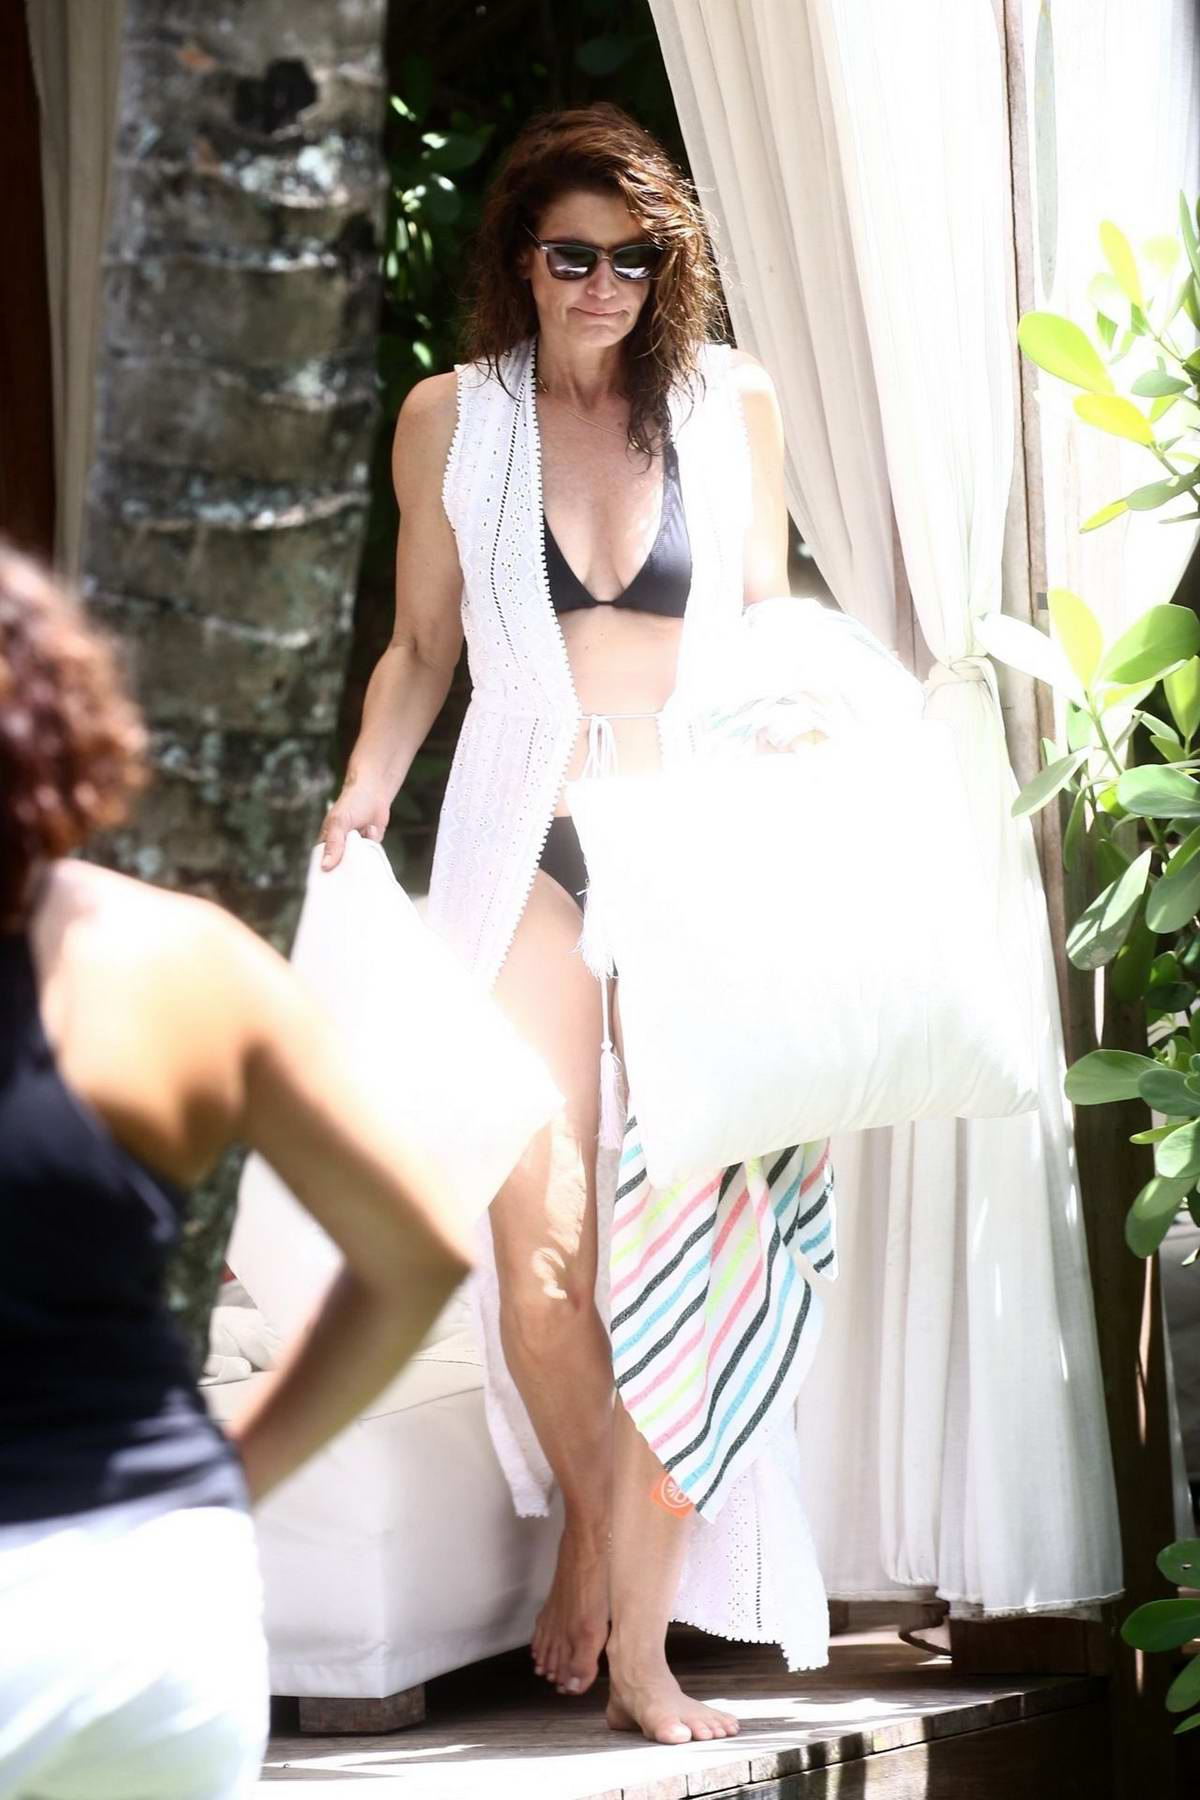 Cindy Crawford seen relaxing by the pool while on vacation in Miami, Florida